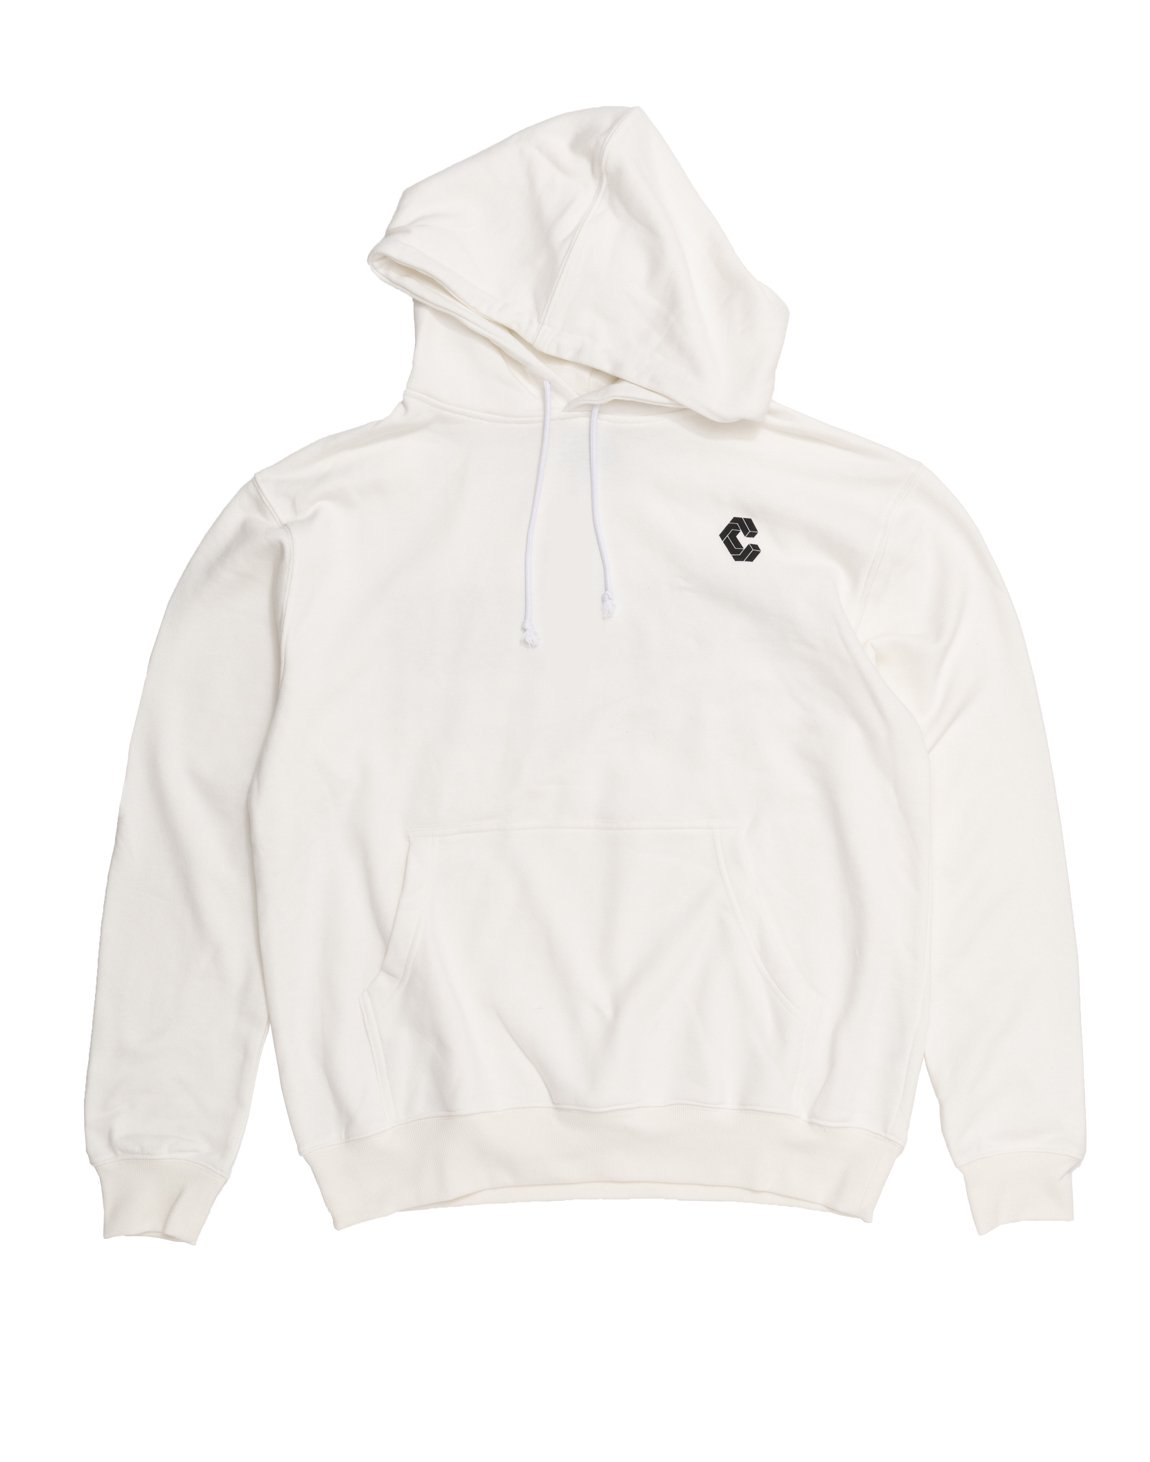 CRONOS GUESS THE NUMBERS  PARKA 【WHITE】